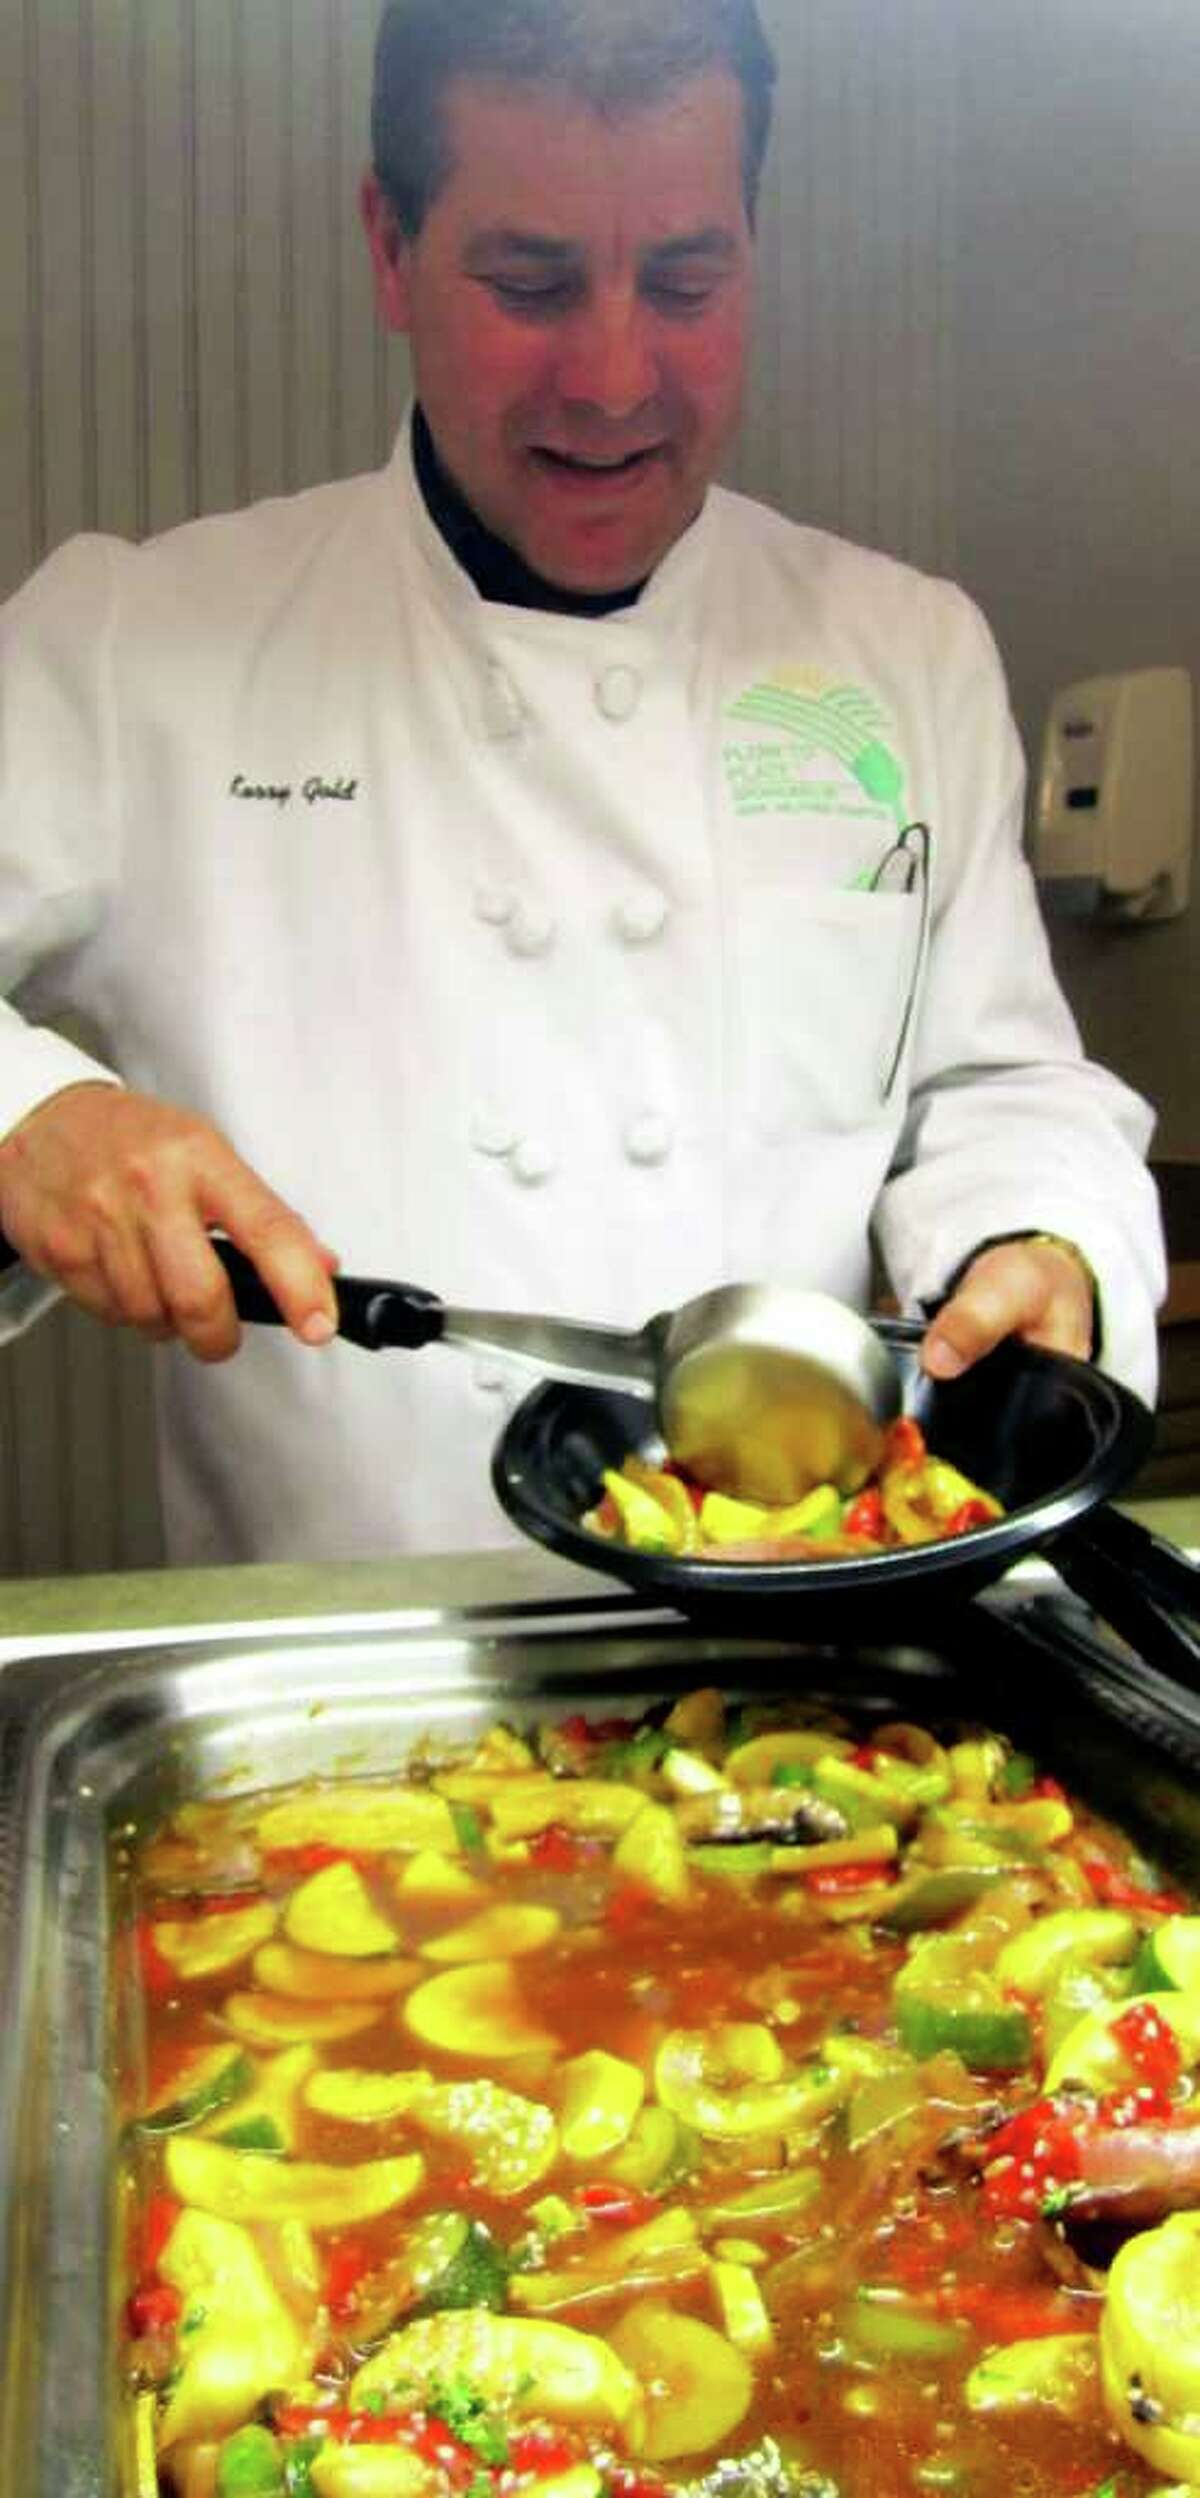 SPECTRUM/Kerry Gold is chef and director for the New Milford Hospital food service, regularly dish out meals that appeal to and are good for staff, patients and patrons from the community.